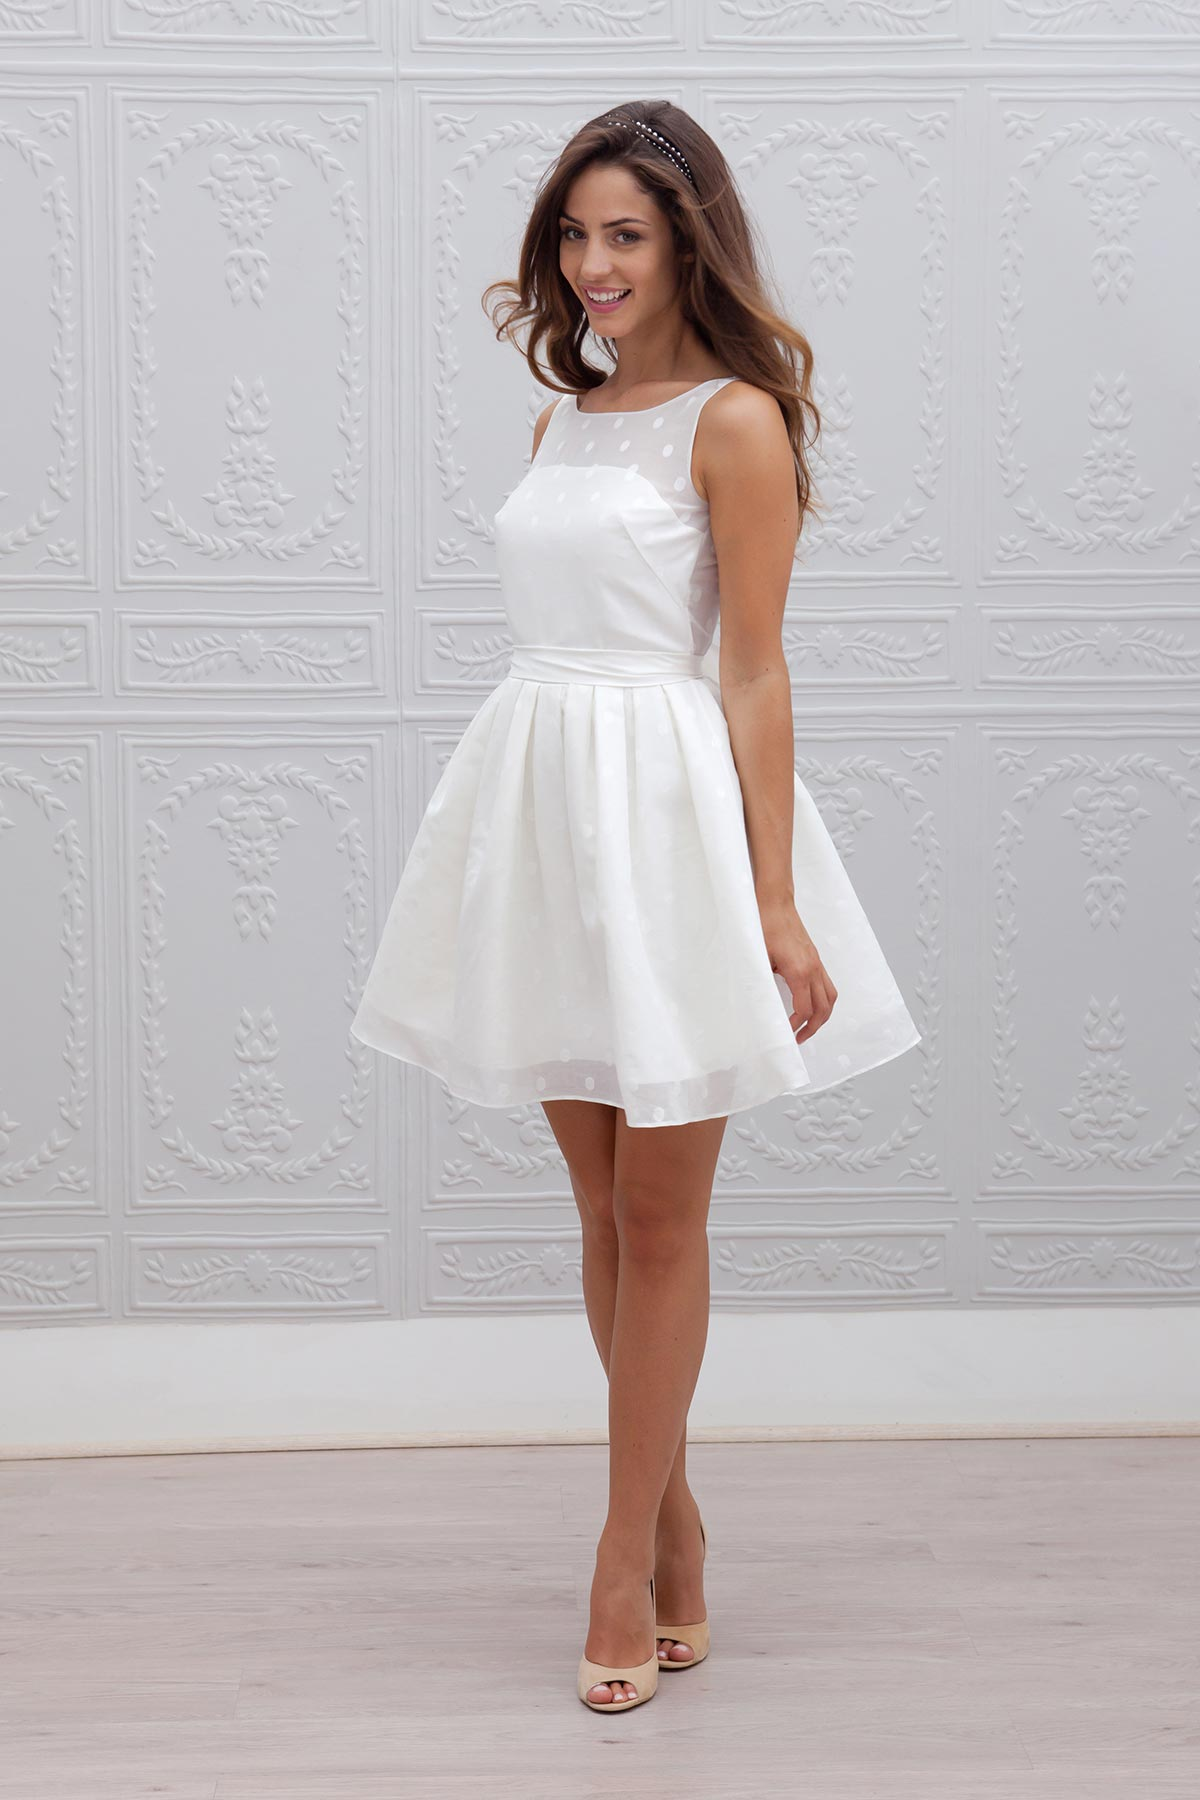 Marie laporte collection 2015 for Robes simples pour mariage